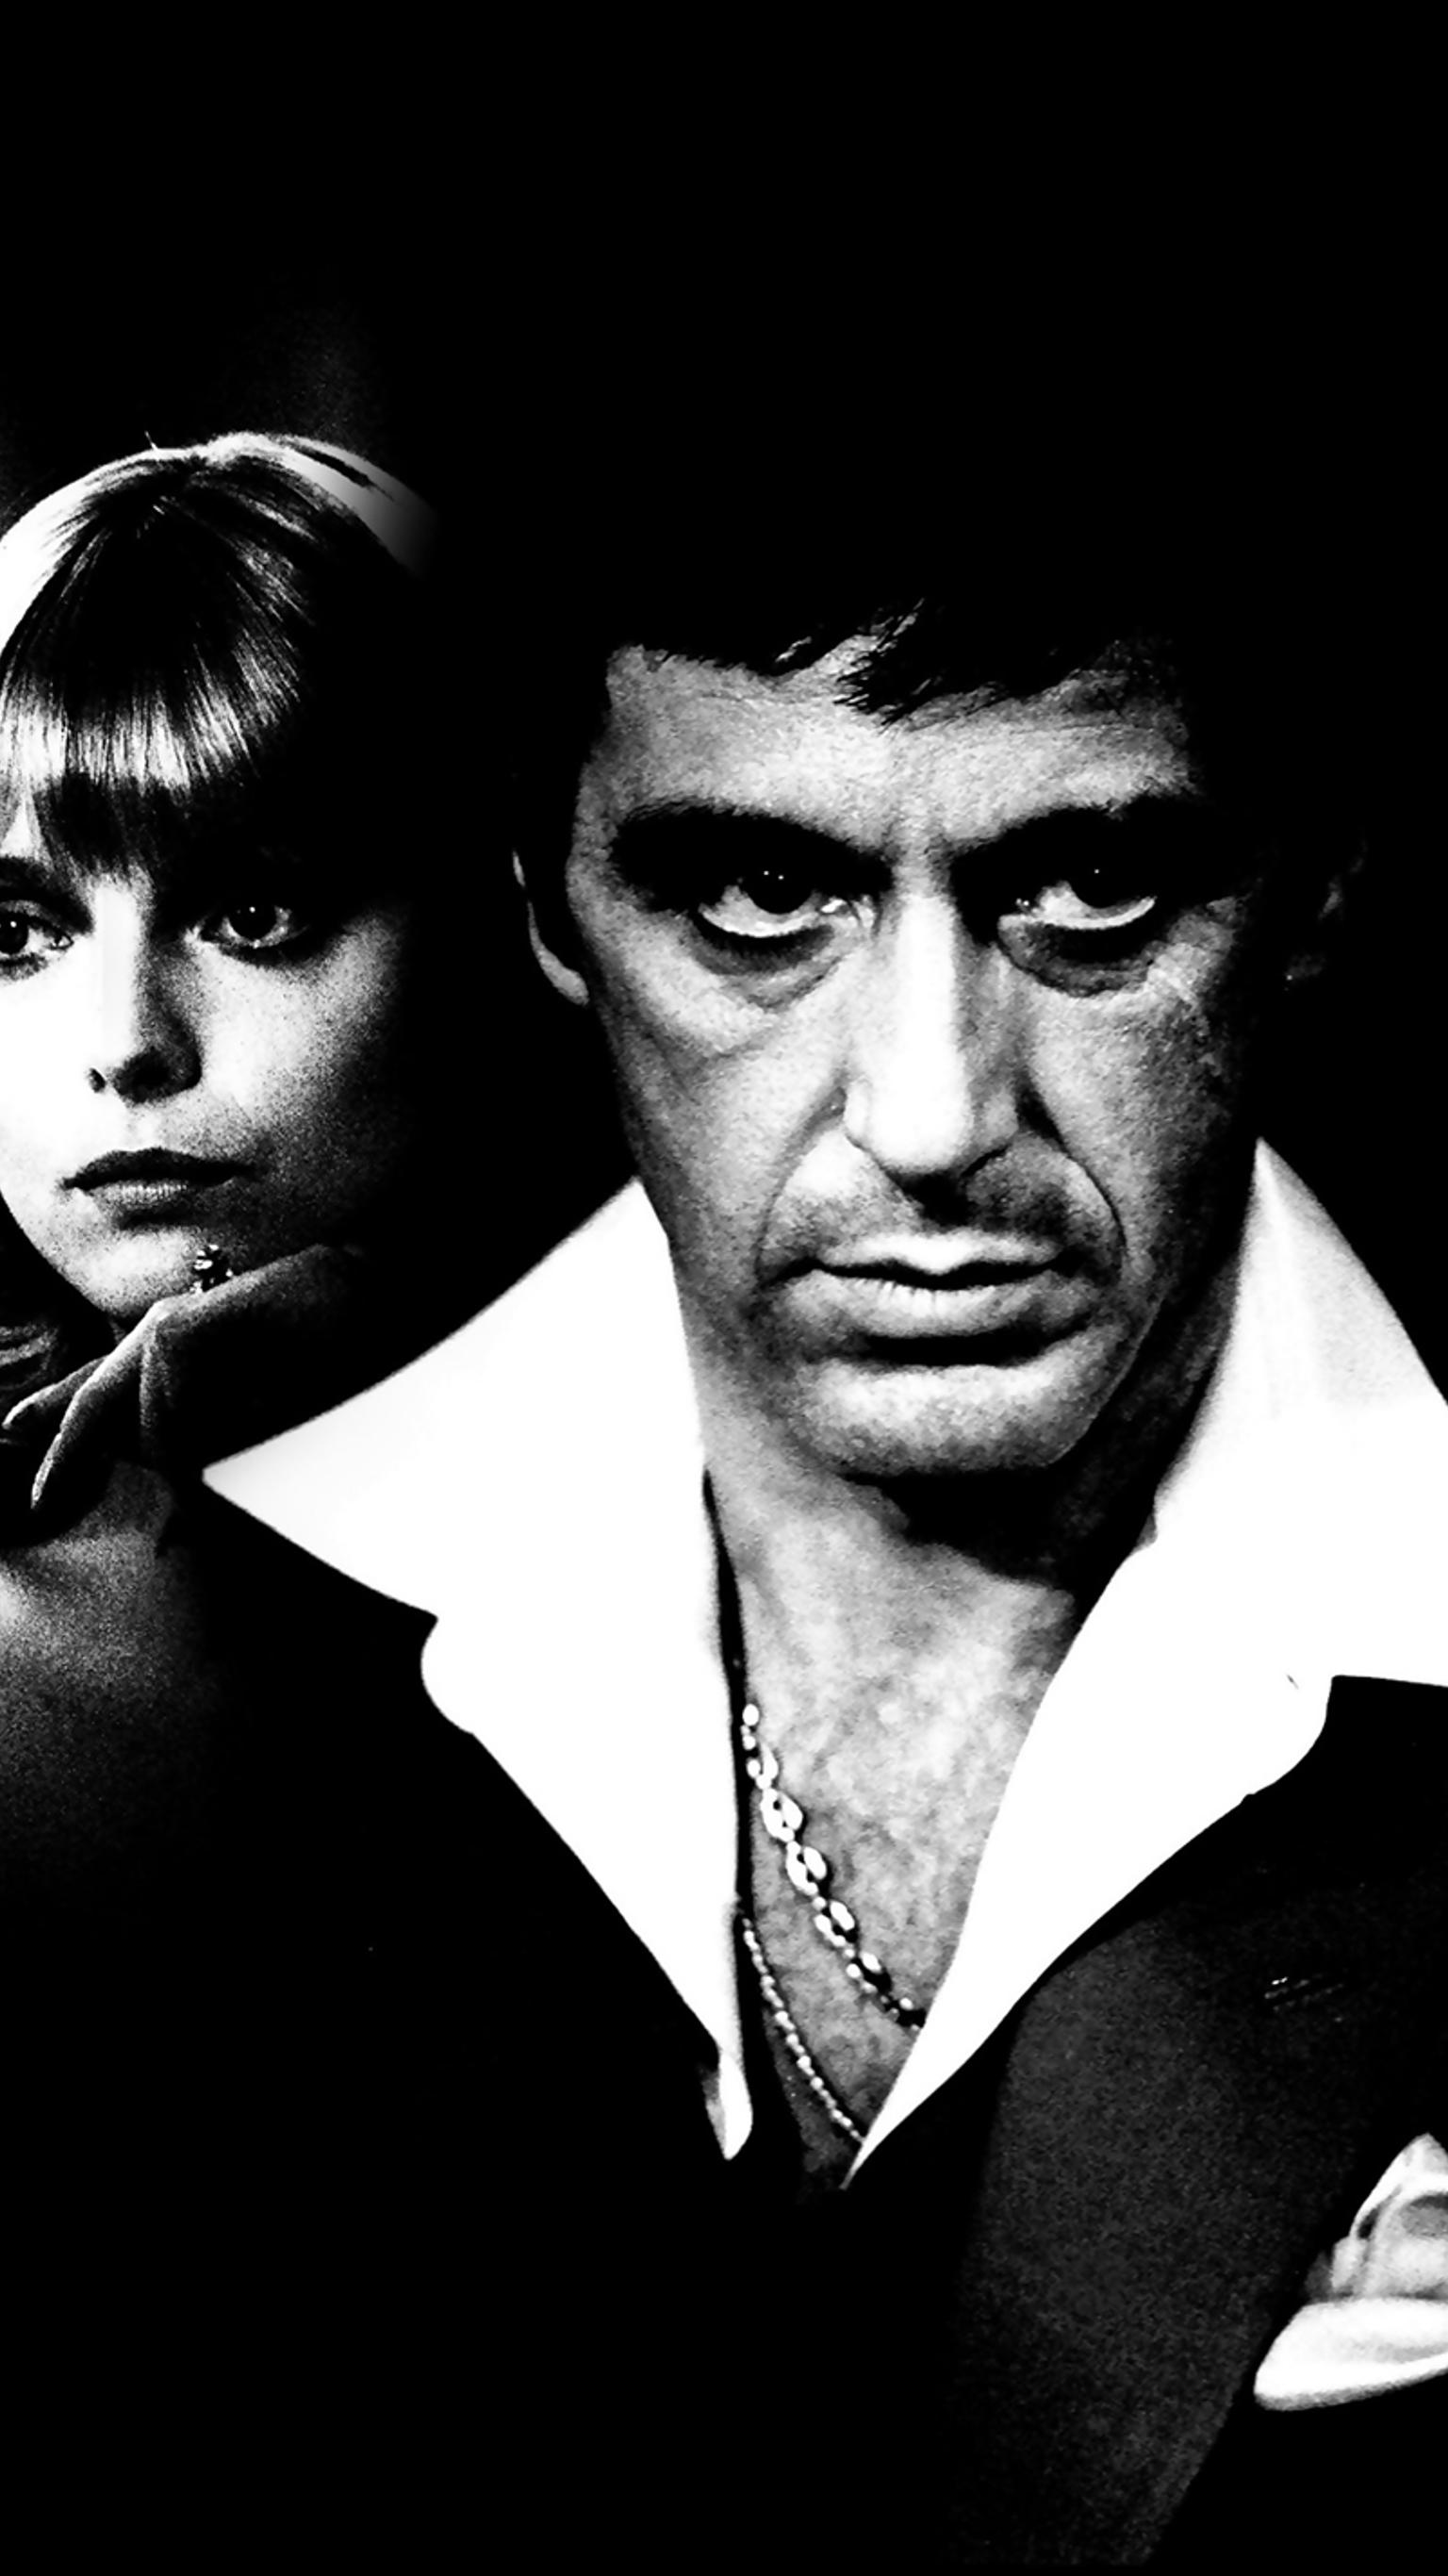 Al Pacino Quotes Wallpaper Scarface Iphone Wallpapers Top Free Scarface Iphone